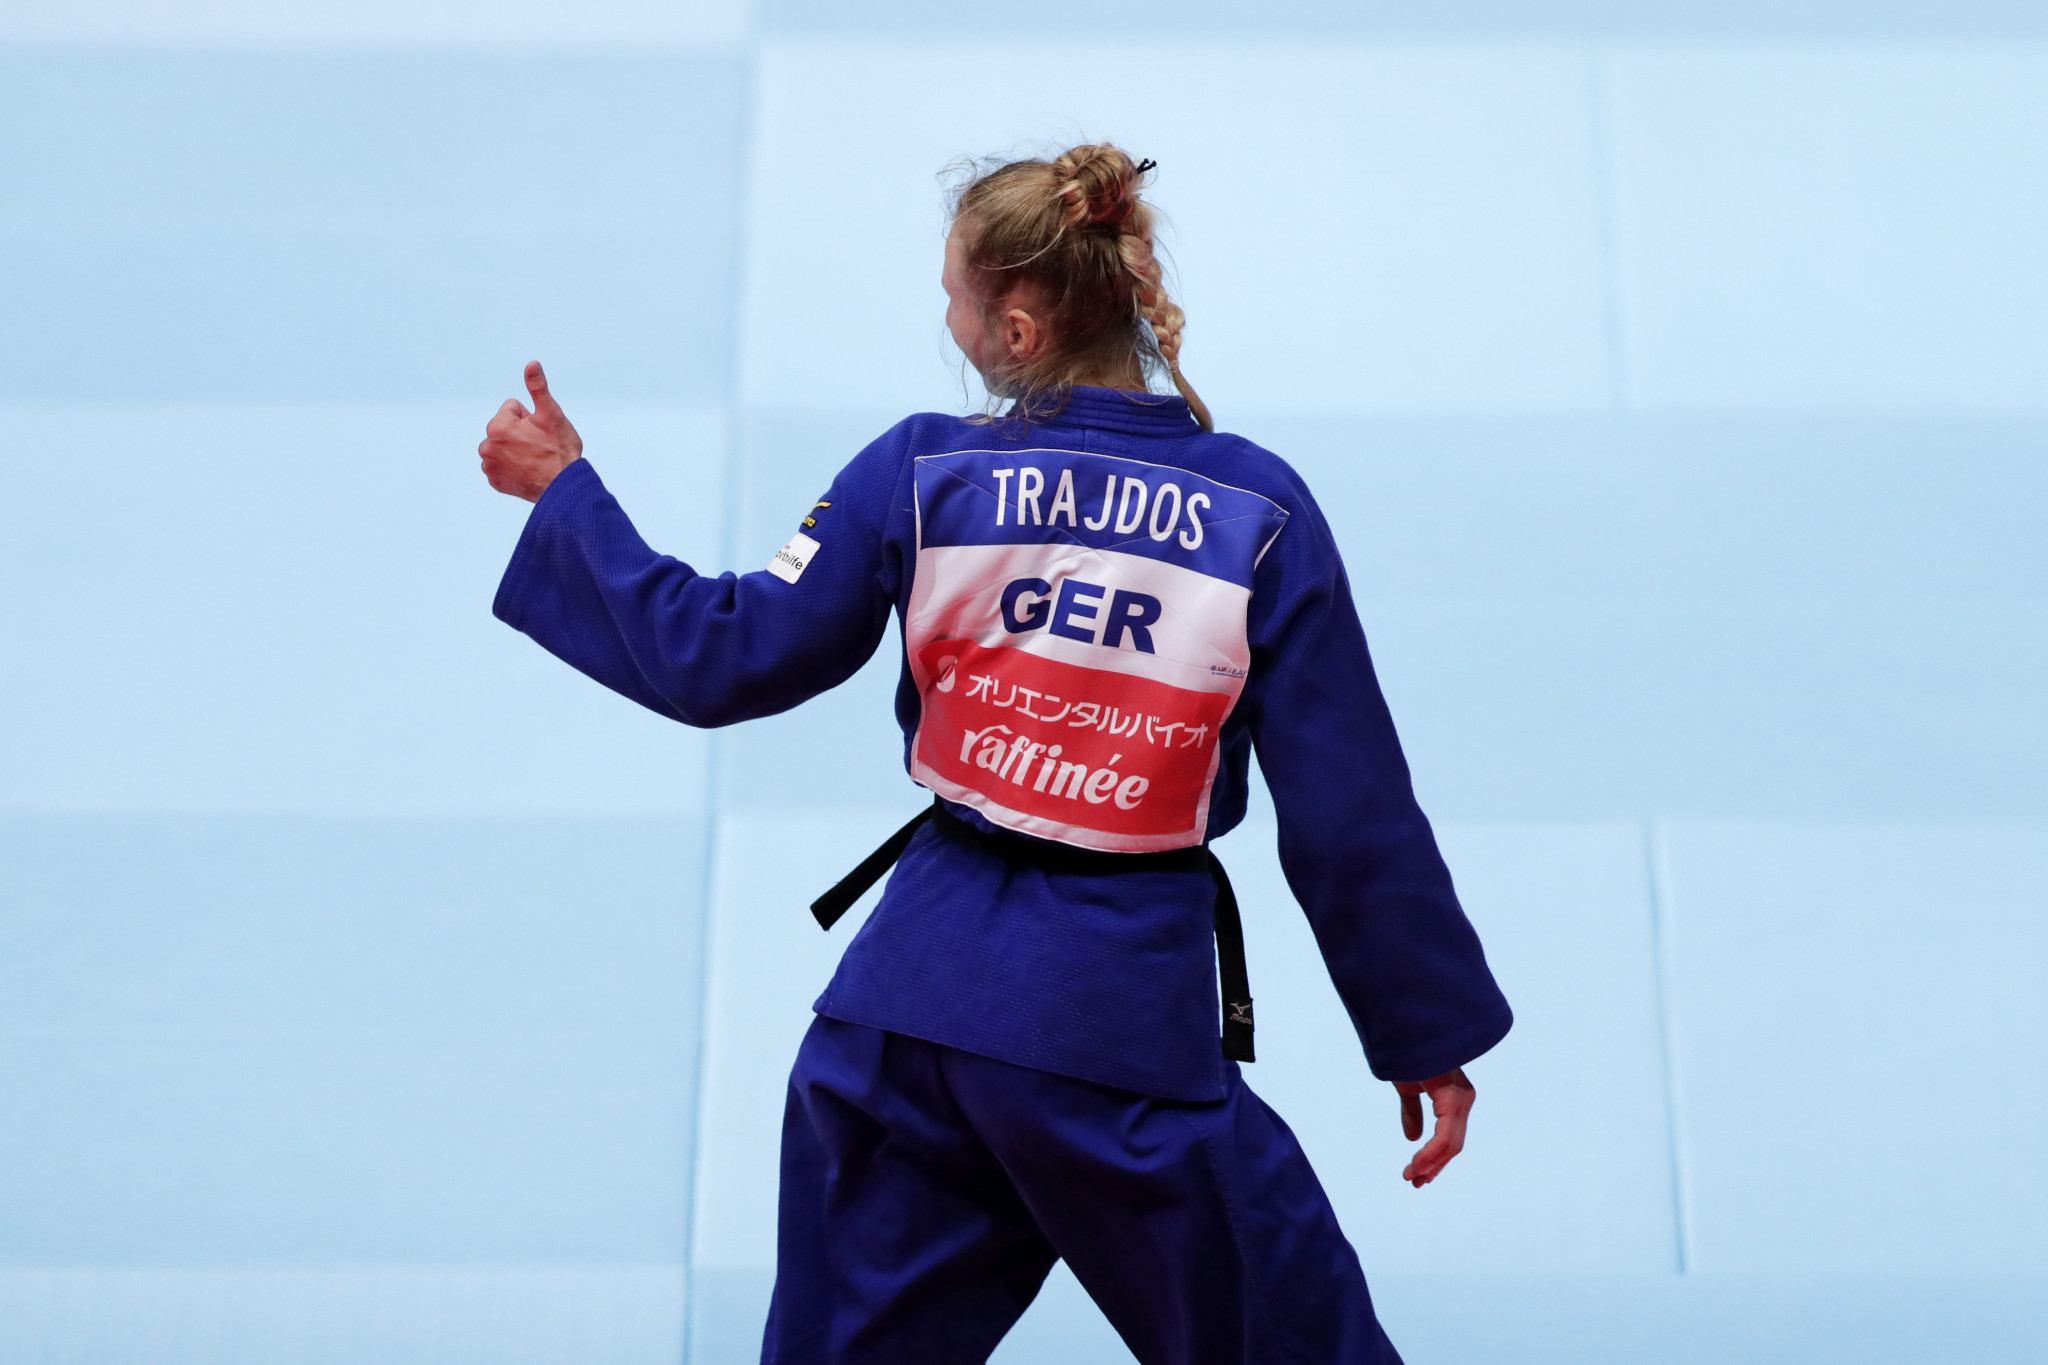 Germany to compete at European Judo Championships despite rising COVID-19 cases in Czech Republic